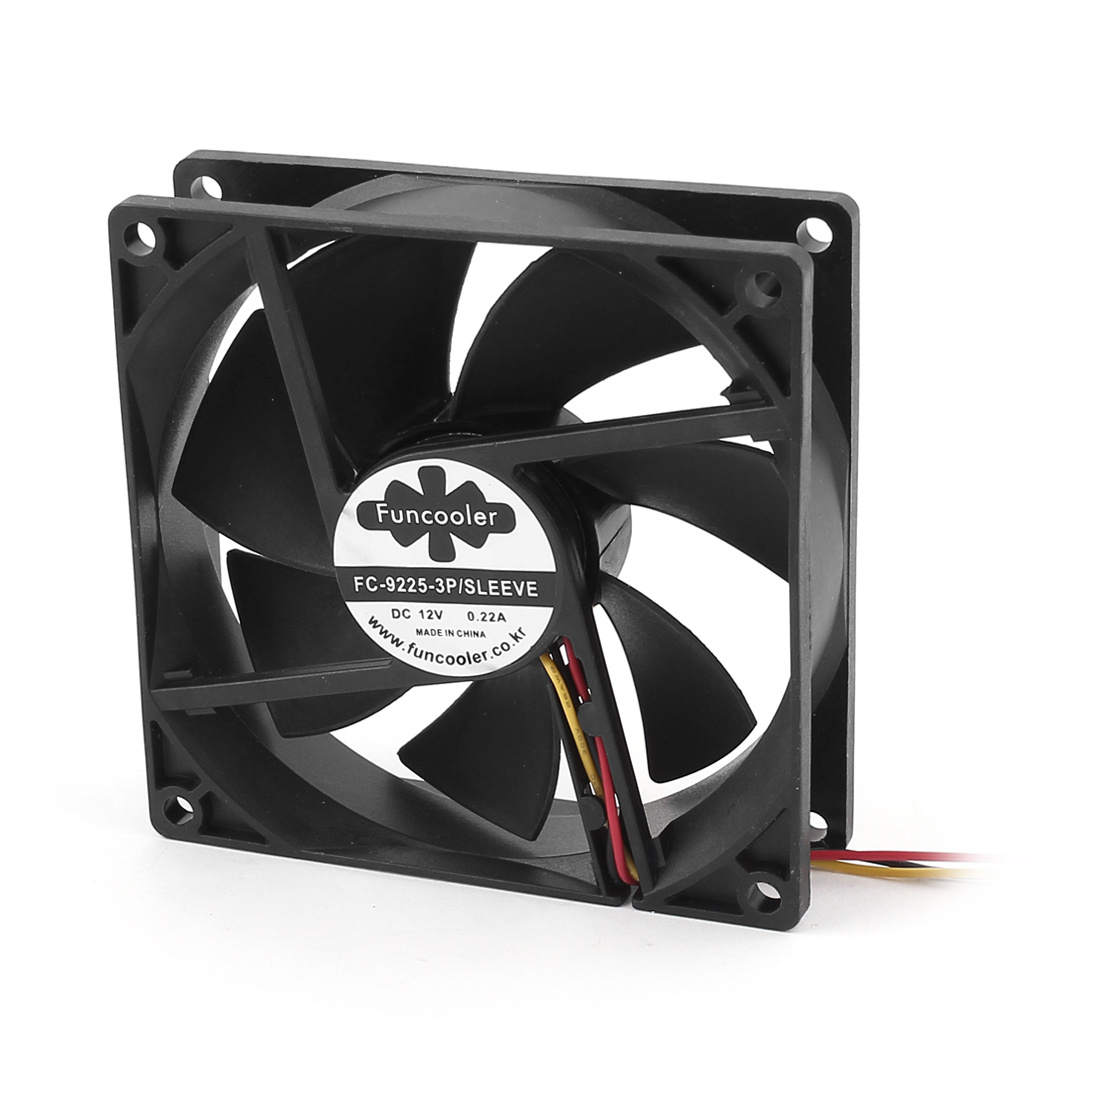 DC 12V 0.22A 90mmx25mm 3-Pin Connector PC Computer Case Cooling Fan Cooler Black